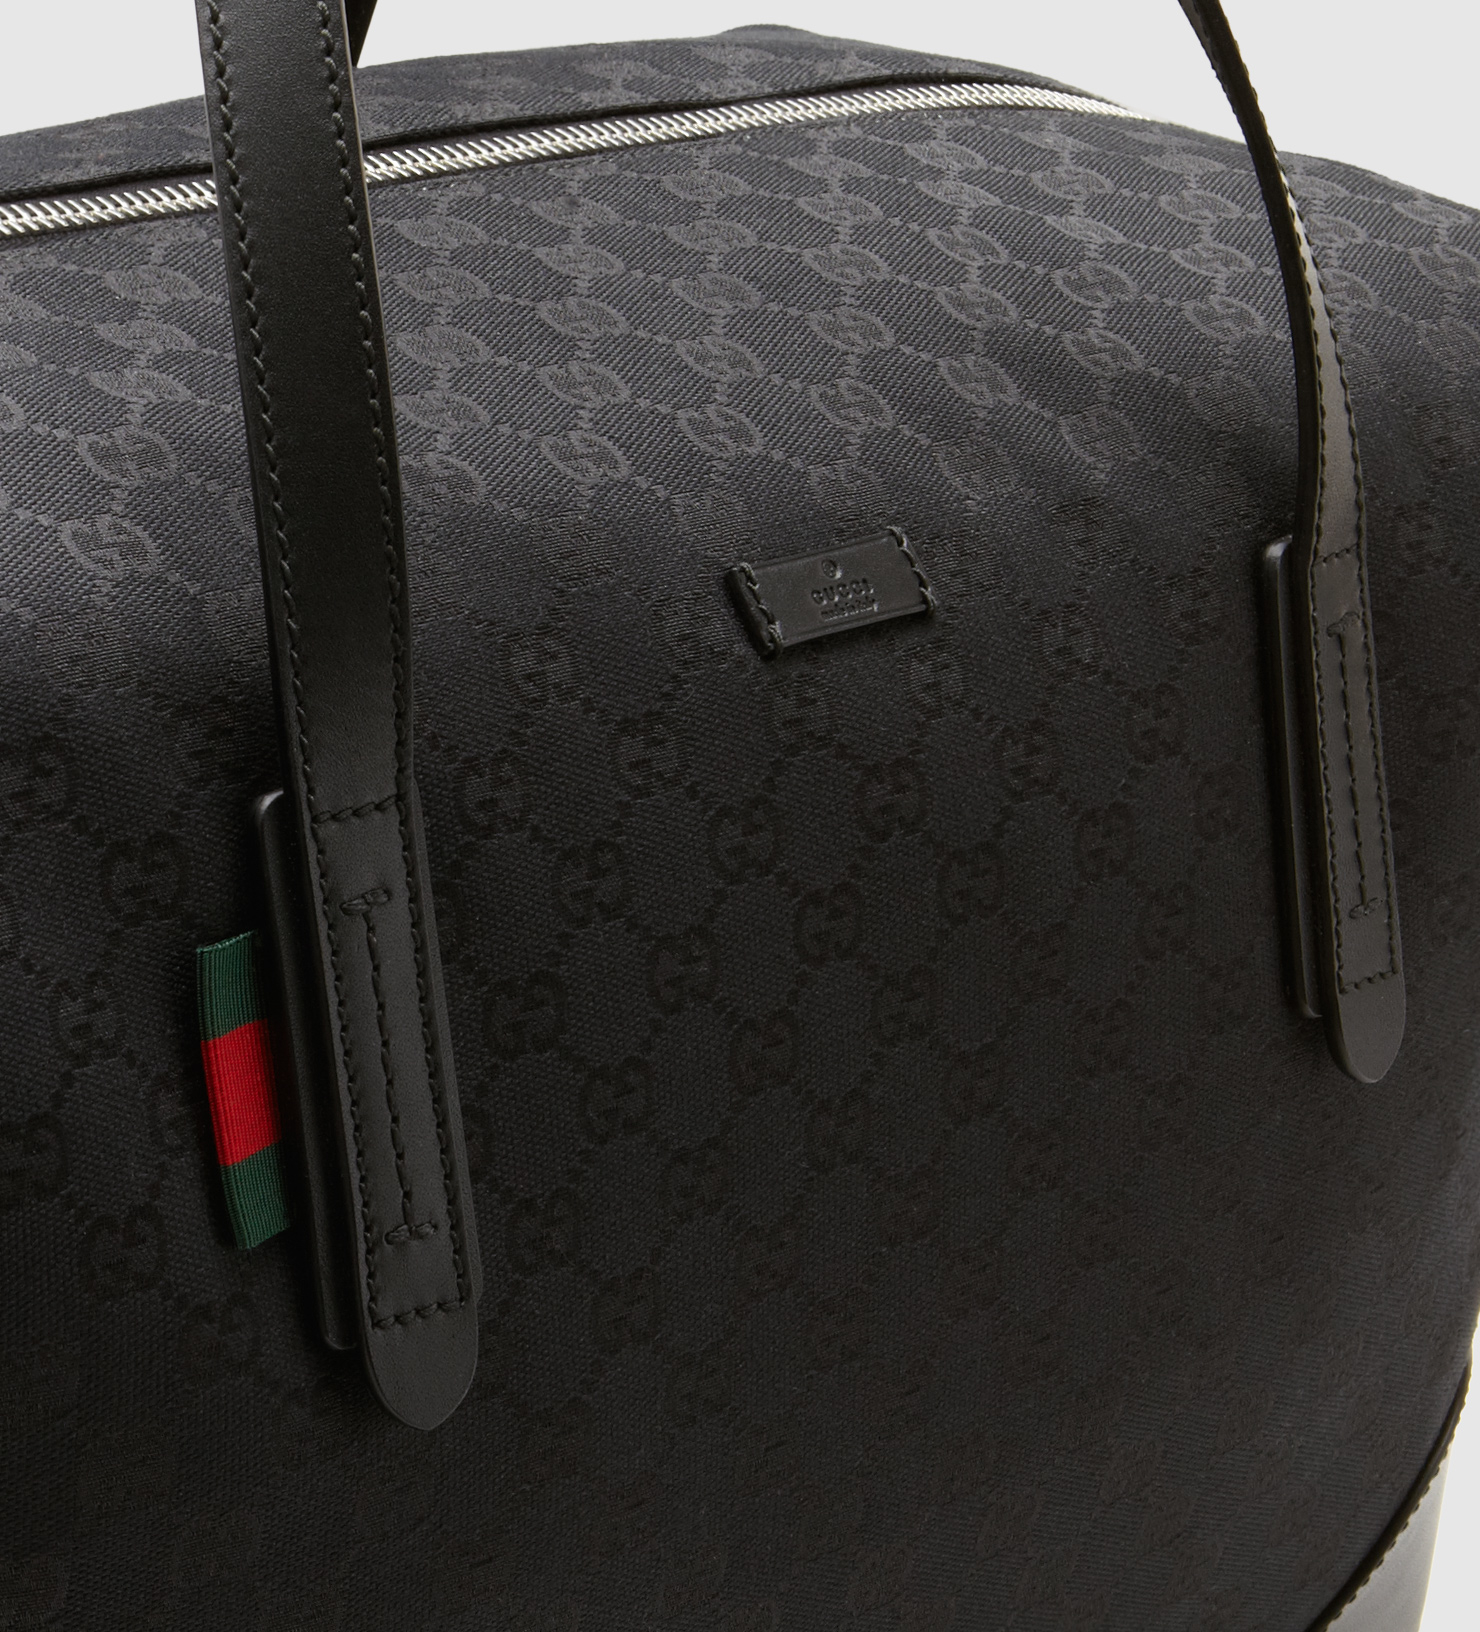 Lyst - Gucci Original Gg Canvas Carry-on Duffle Bag in Black for Men cae641340647e